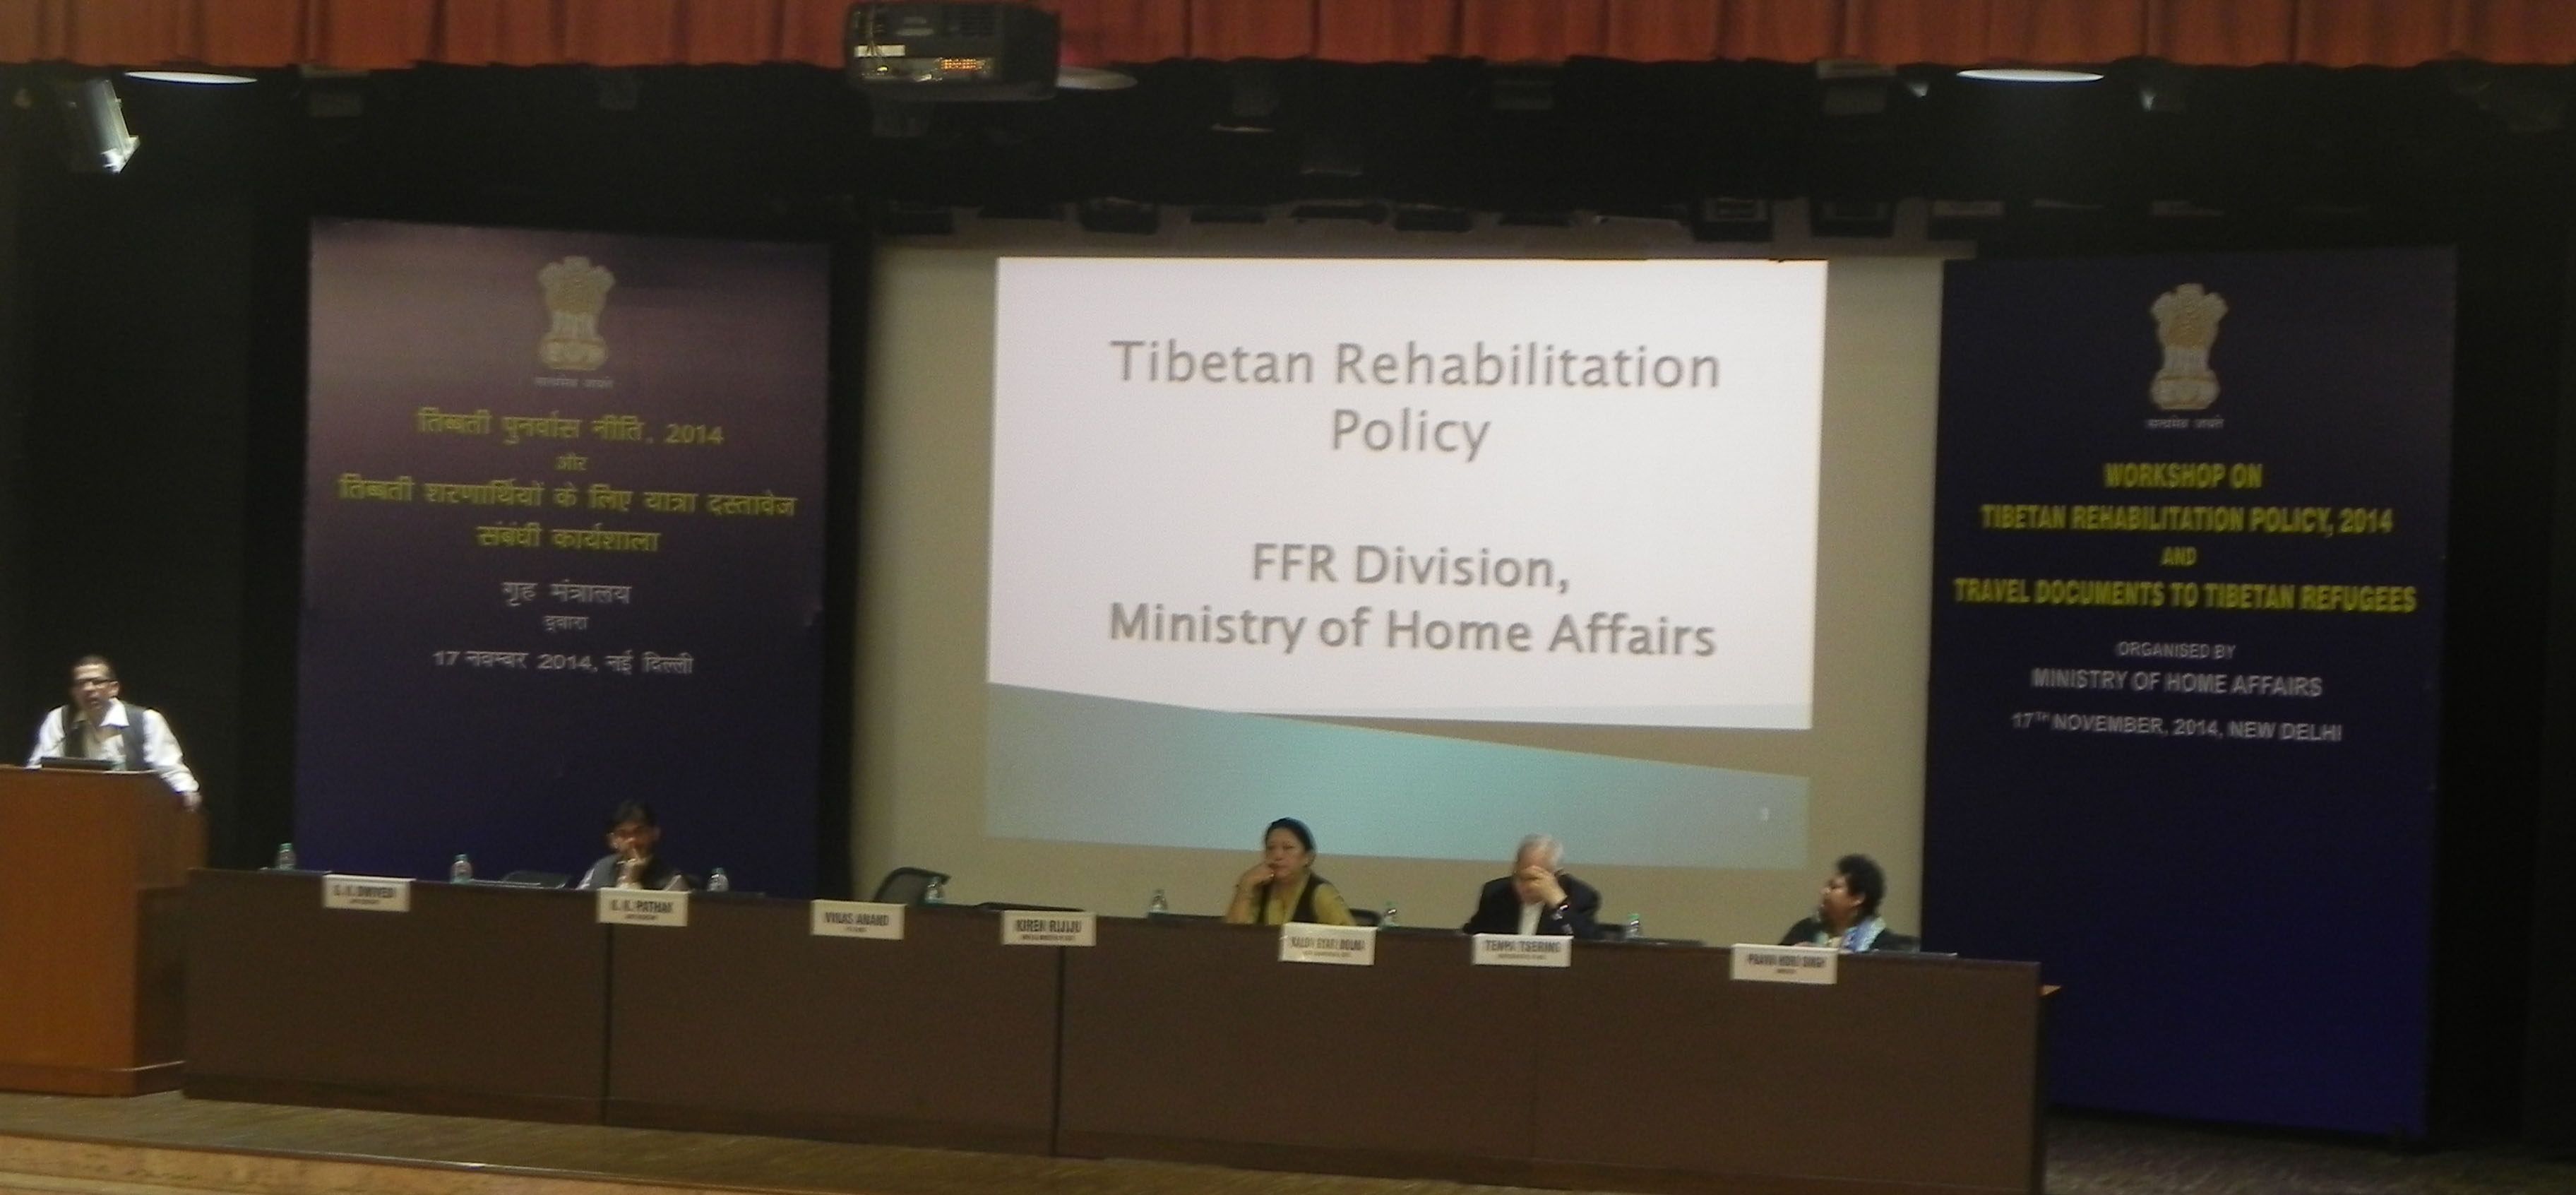 Workshop organised by the Ministry of Home Affairs, Government of India on Tibetan Rehabilitation Policy, 2014 on November 17, 2014 in New Delhi. (File photo)